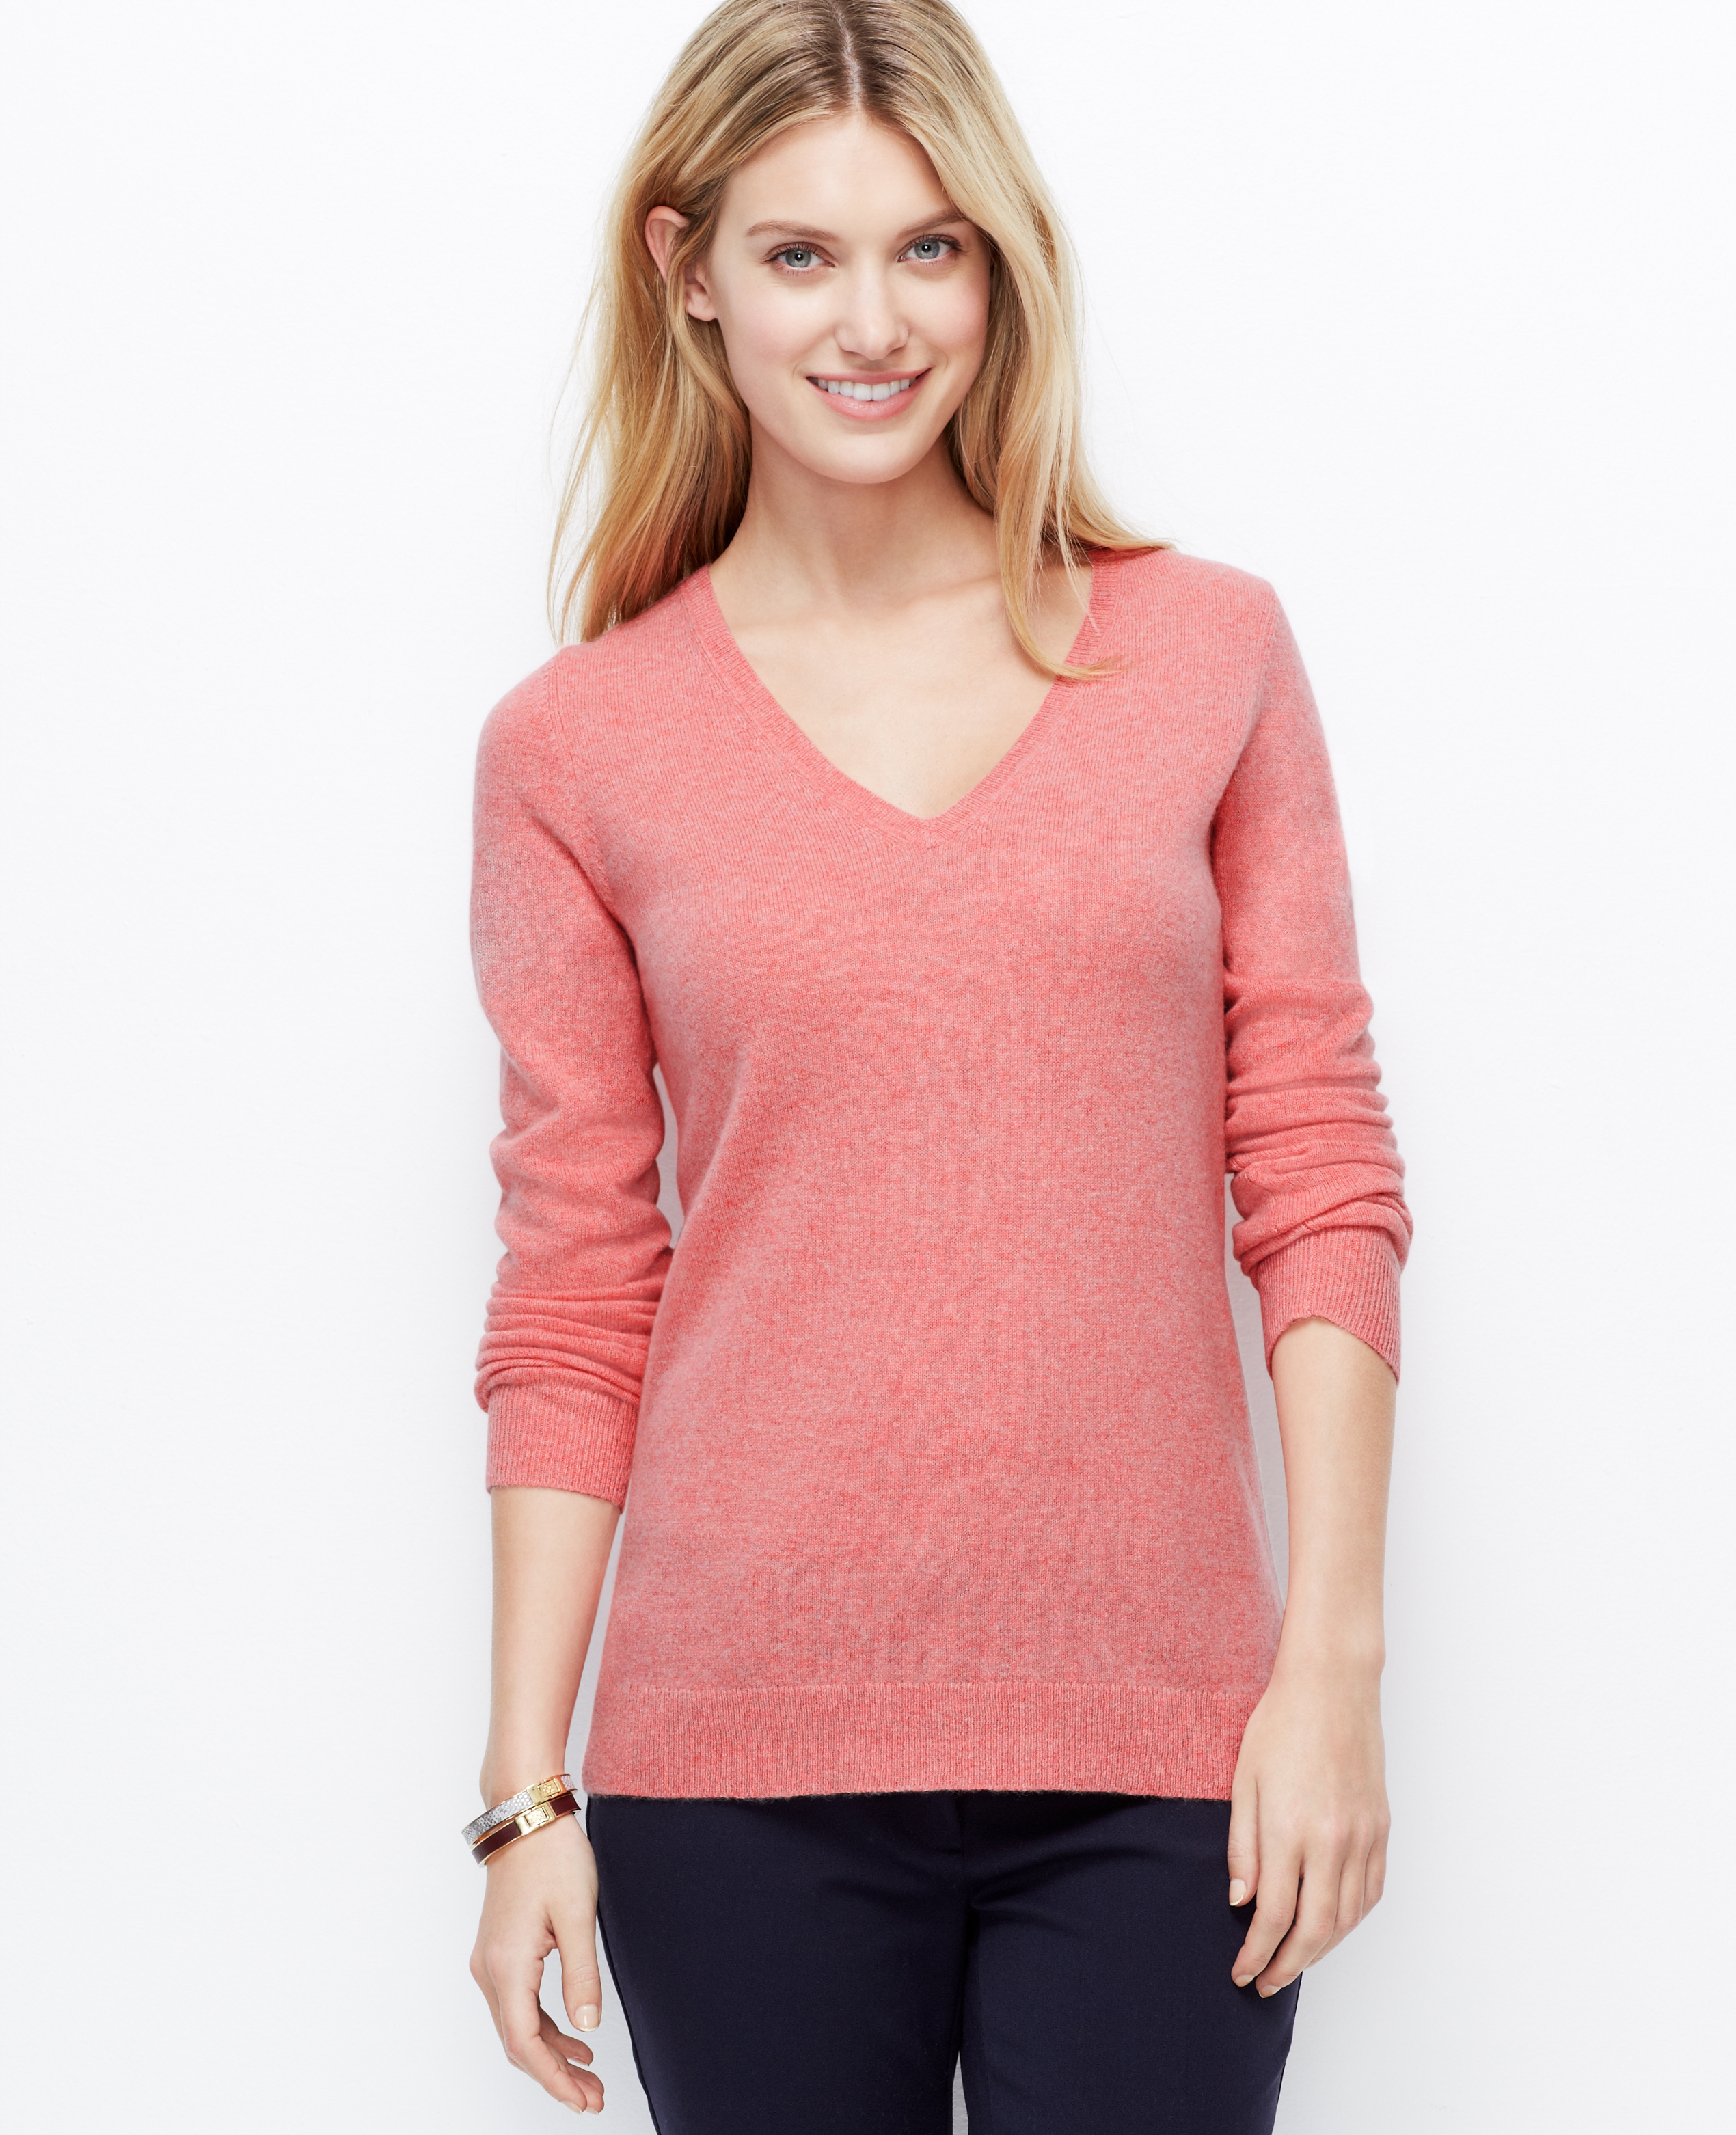 Pink V Neck Sweater Women S Her Sweater